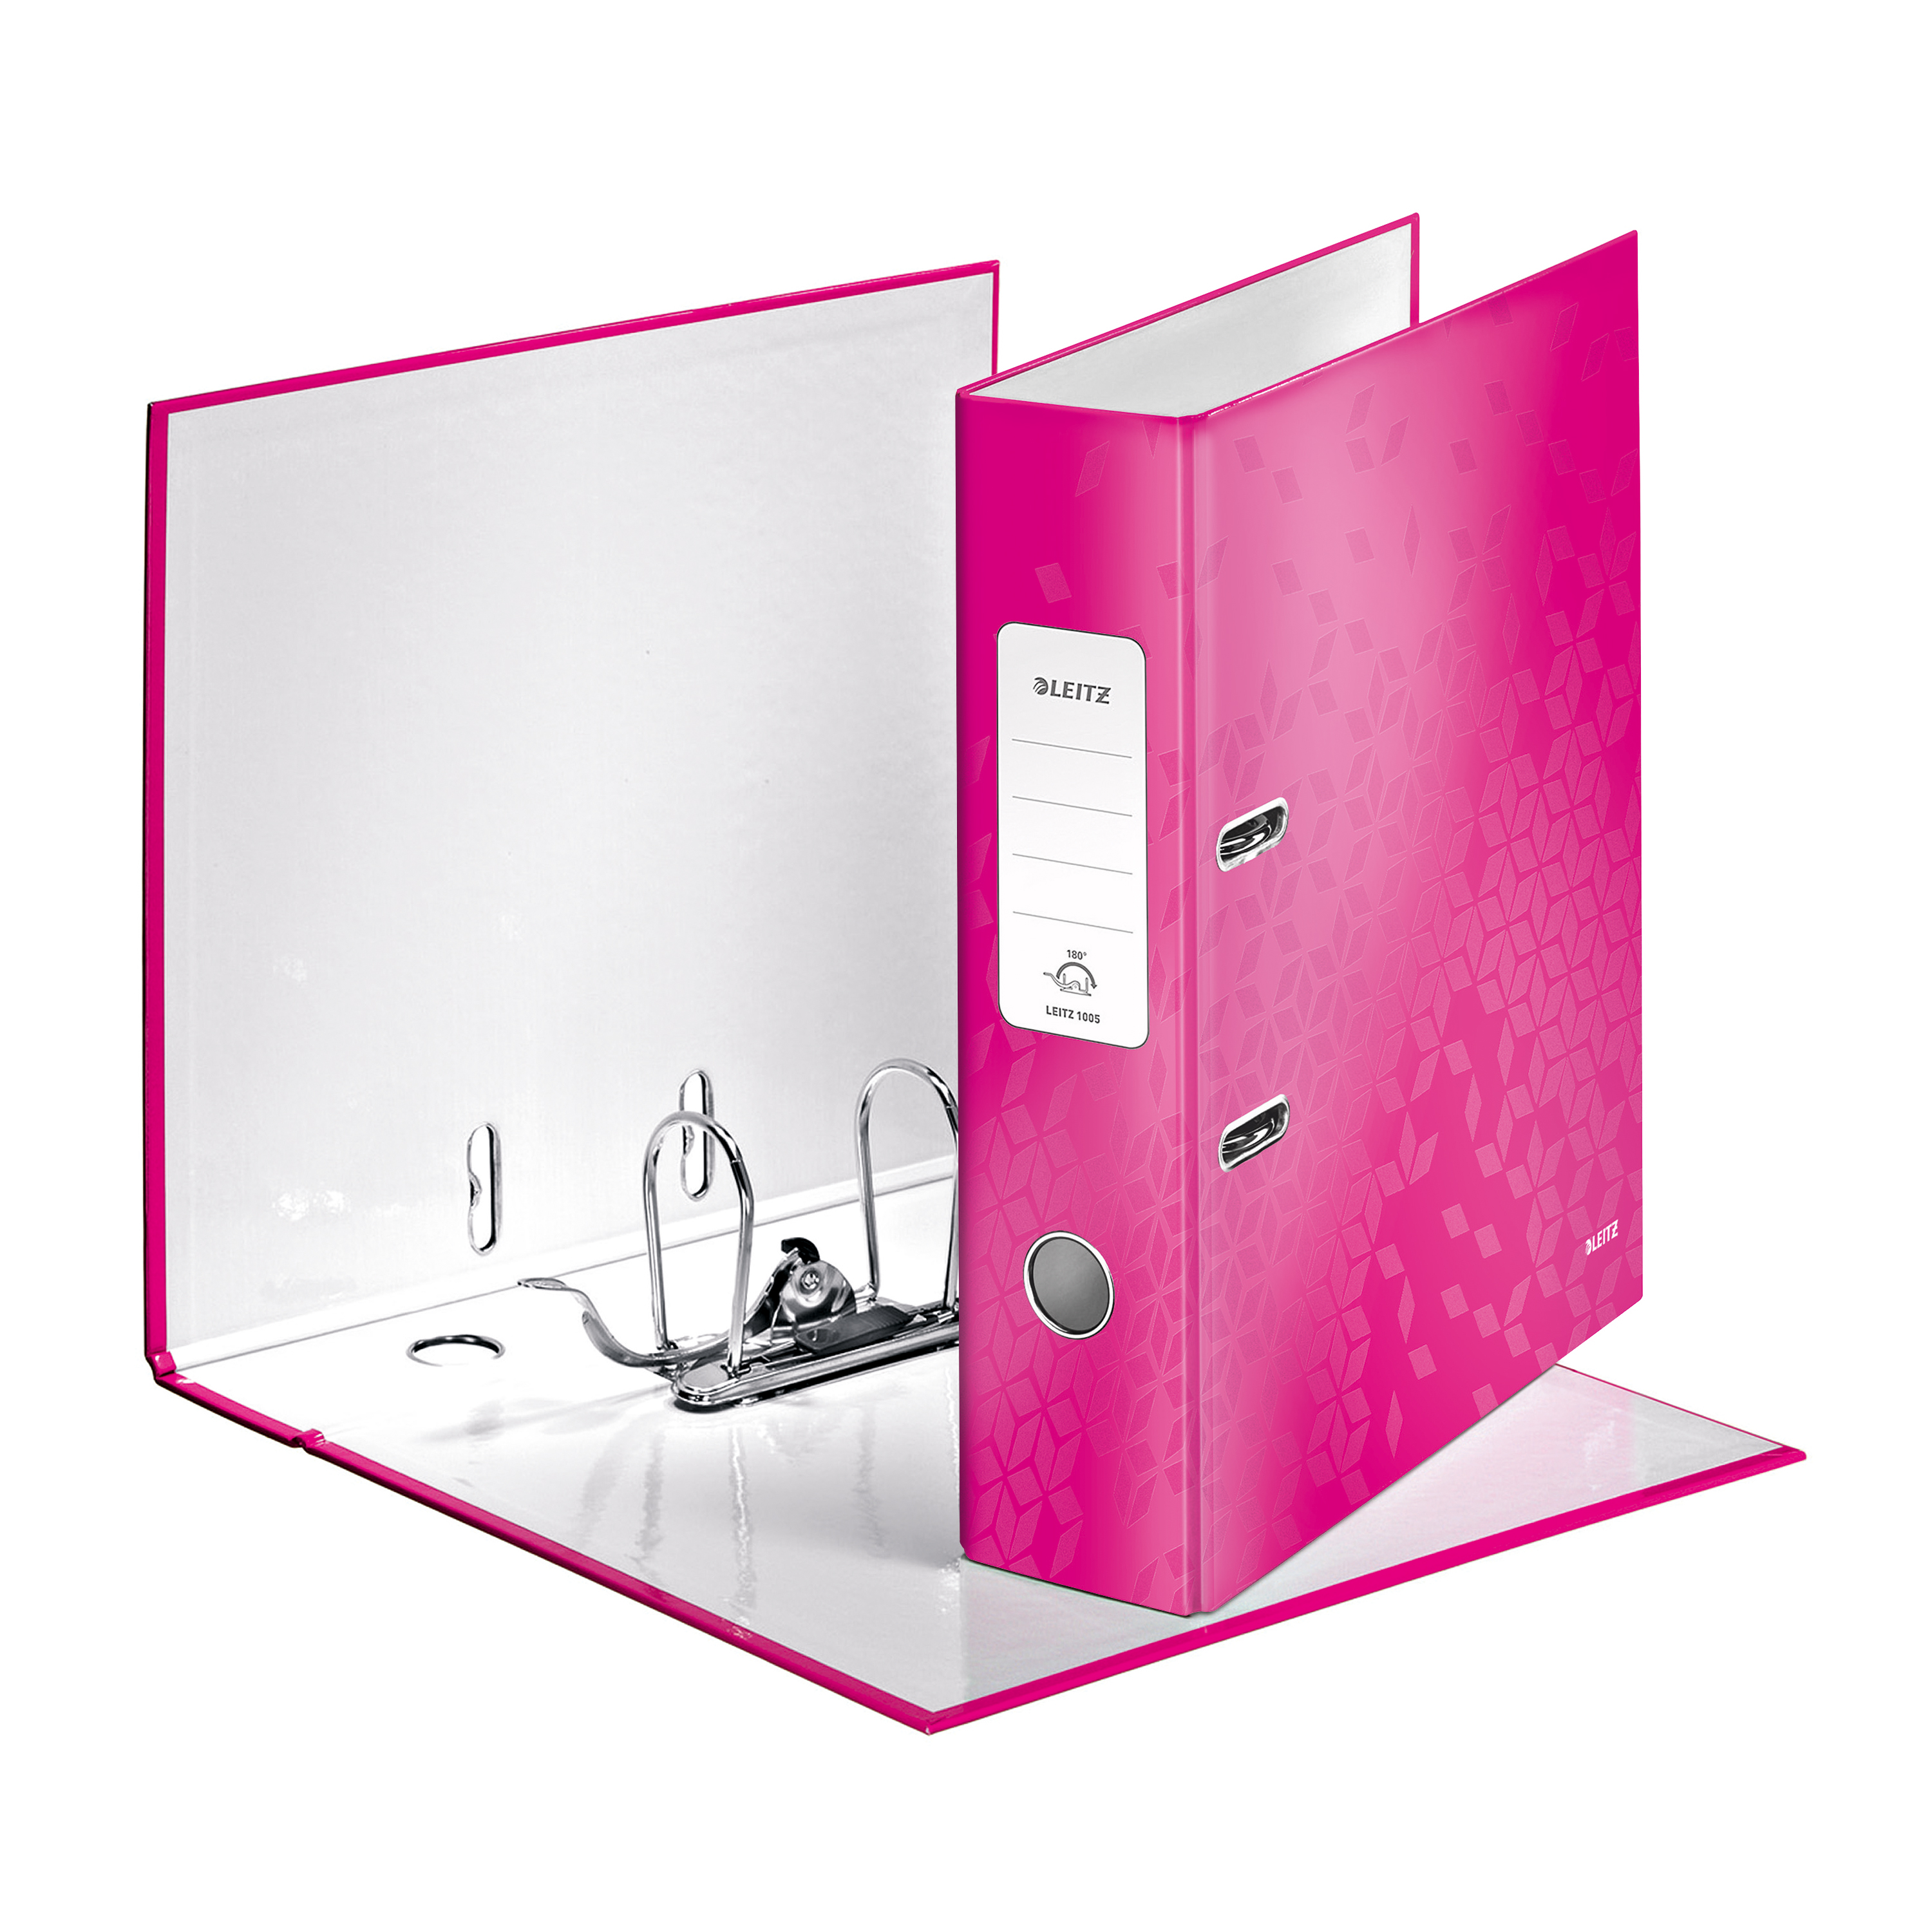 Leitz WOW Lever Arch File 80mm Spine for 600 Sheets A4 Pink Ref 10050023 Pack 10 REDEMPTION Oct-Dec19